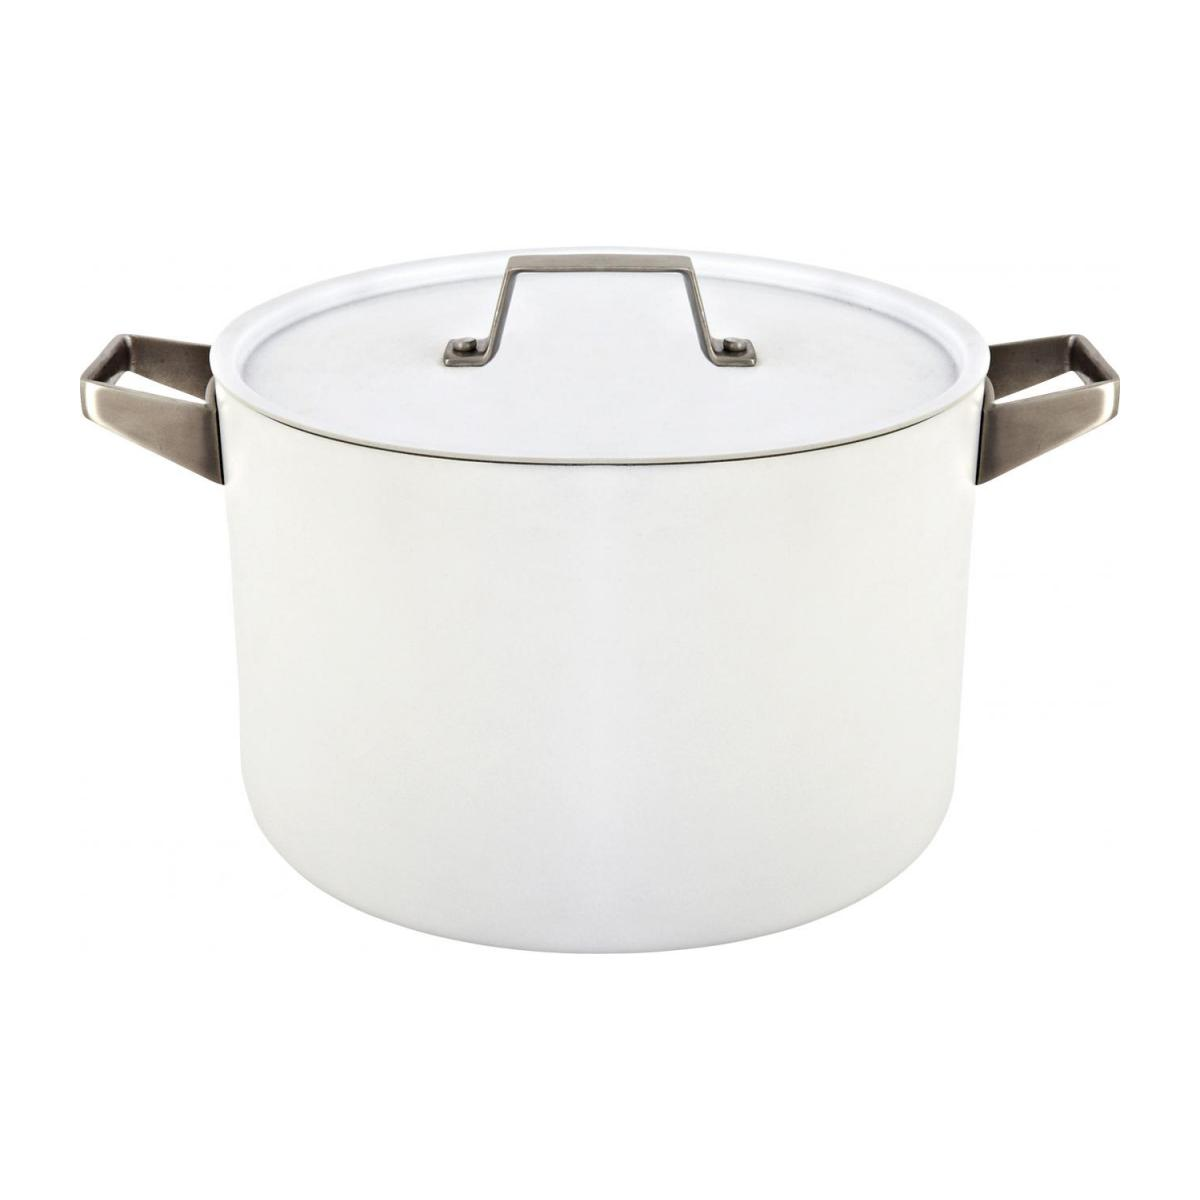 White aluminium pot and lid 26 cm with inner coating in ceramic n°1